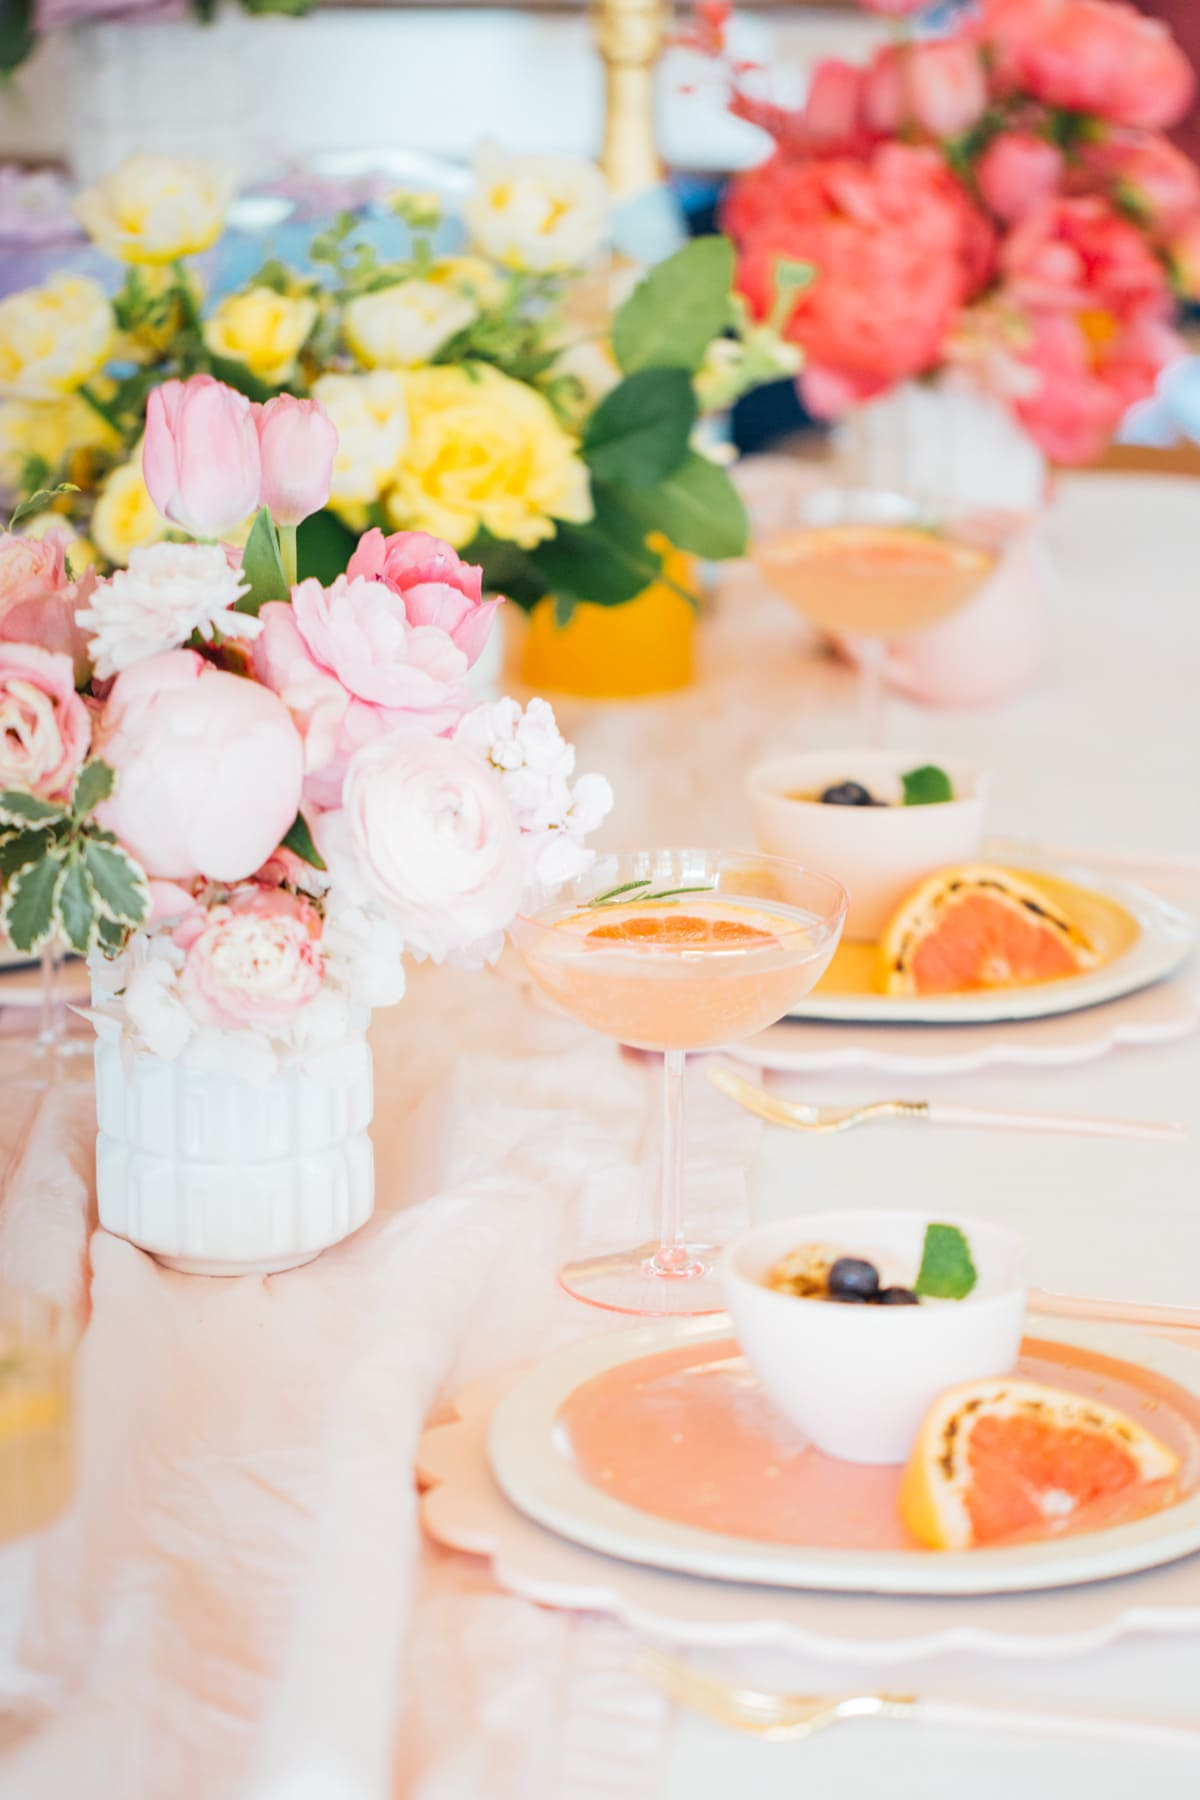 Easter tablesetting ideas - A Perfectly Pastel Easter Table Idea by top Houston lifestyle blogger Ashley Rose of Sugar & Cloth #diy #tablescape #ideas #easter #pastel #party #decorations #brunch #bridalshower #bridal #shower #baby